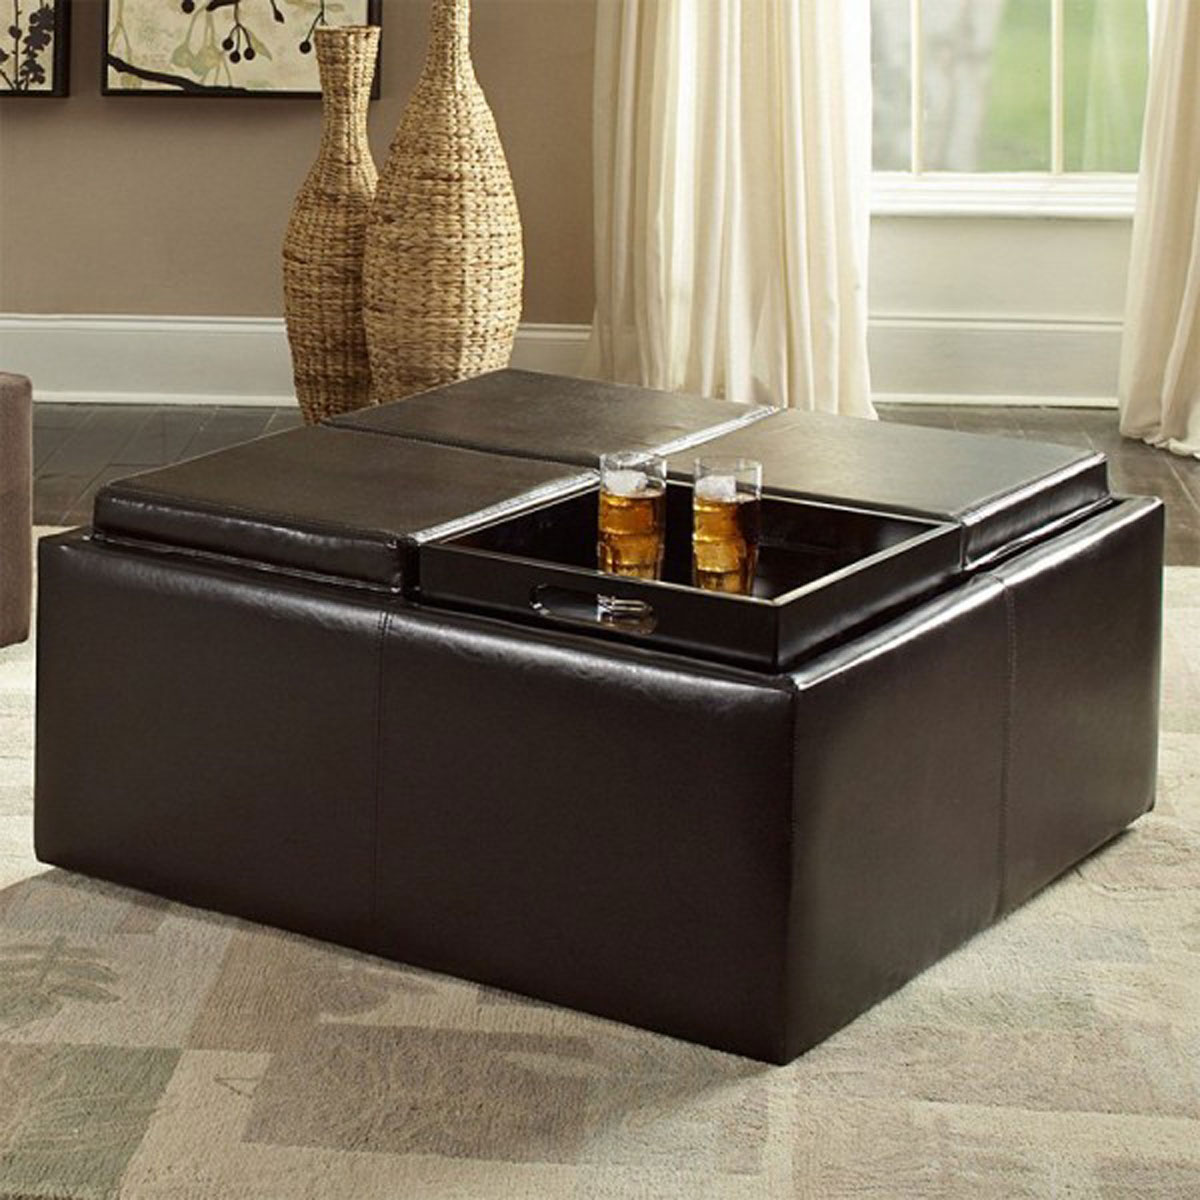 Modern furniture 2013 modern coffee table design ideas for Modern living room bench